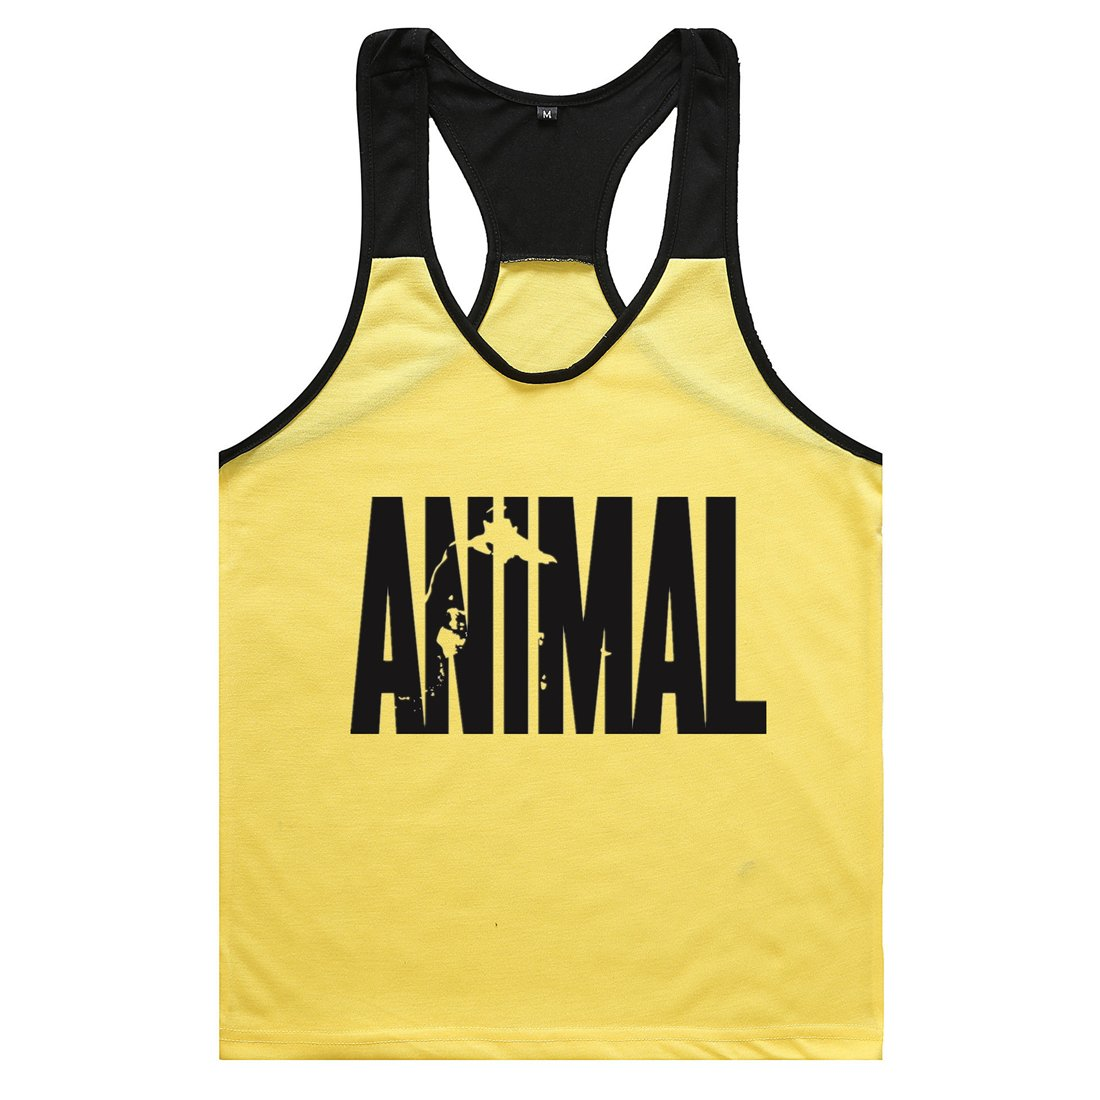 YeeHoo Cut Open Sides Cotton Animal Muscle Stringer Vest Tank Top Workout xst83